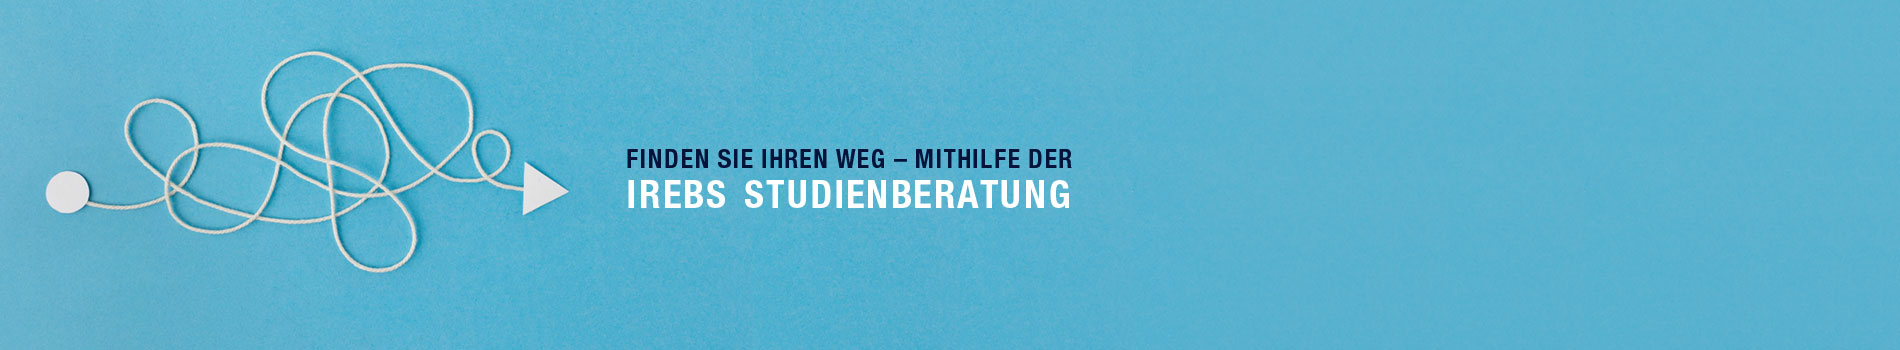 IREBS Studienberatung